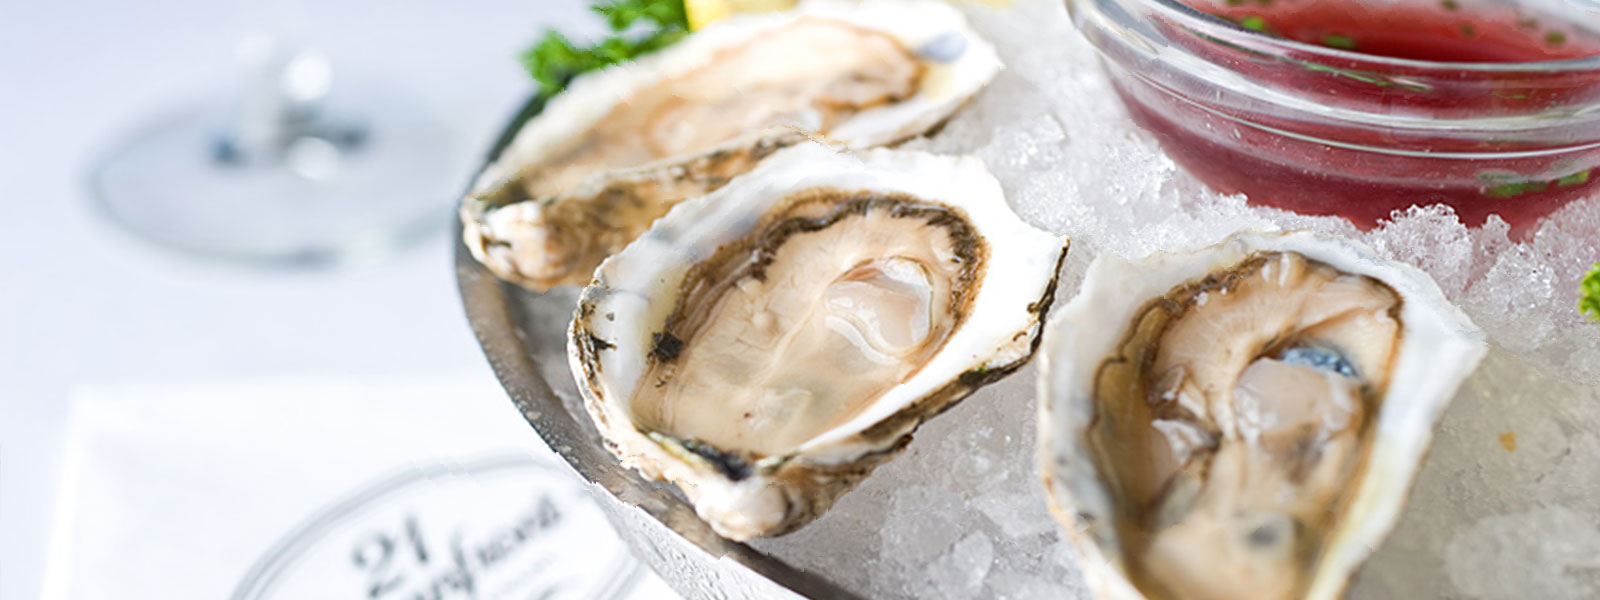 Bluewater Grill Seafood Restaurant Oyster Bar Right On The Waterfront In Newport Harbor